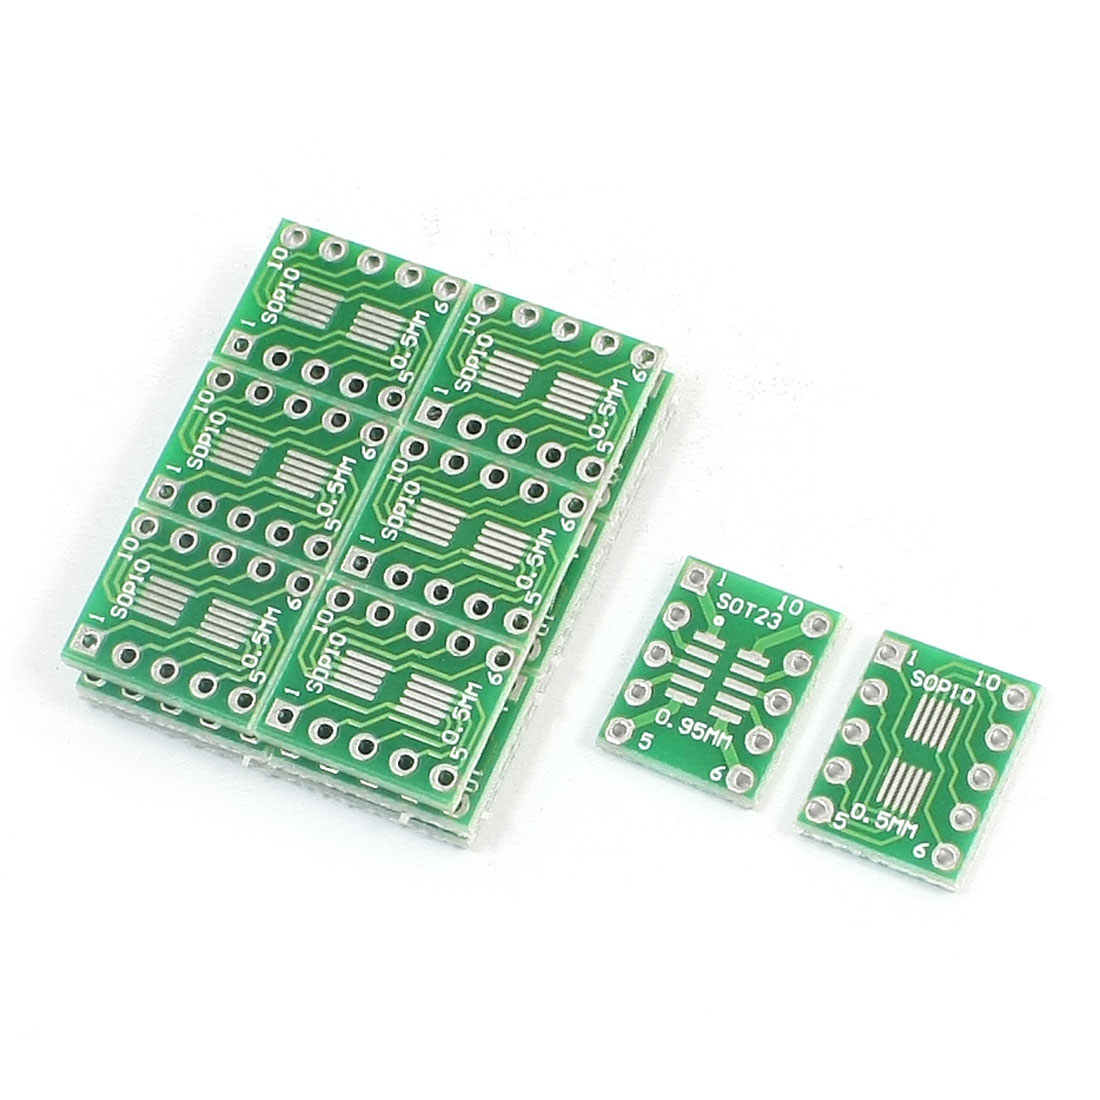 20Pcs SOT23 MSOP10 0.95mm 0.5mm to DIP 10-Pin 2.54mm Pitch Dual Sides PCB Adapter Plate Converter Board